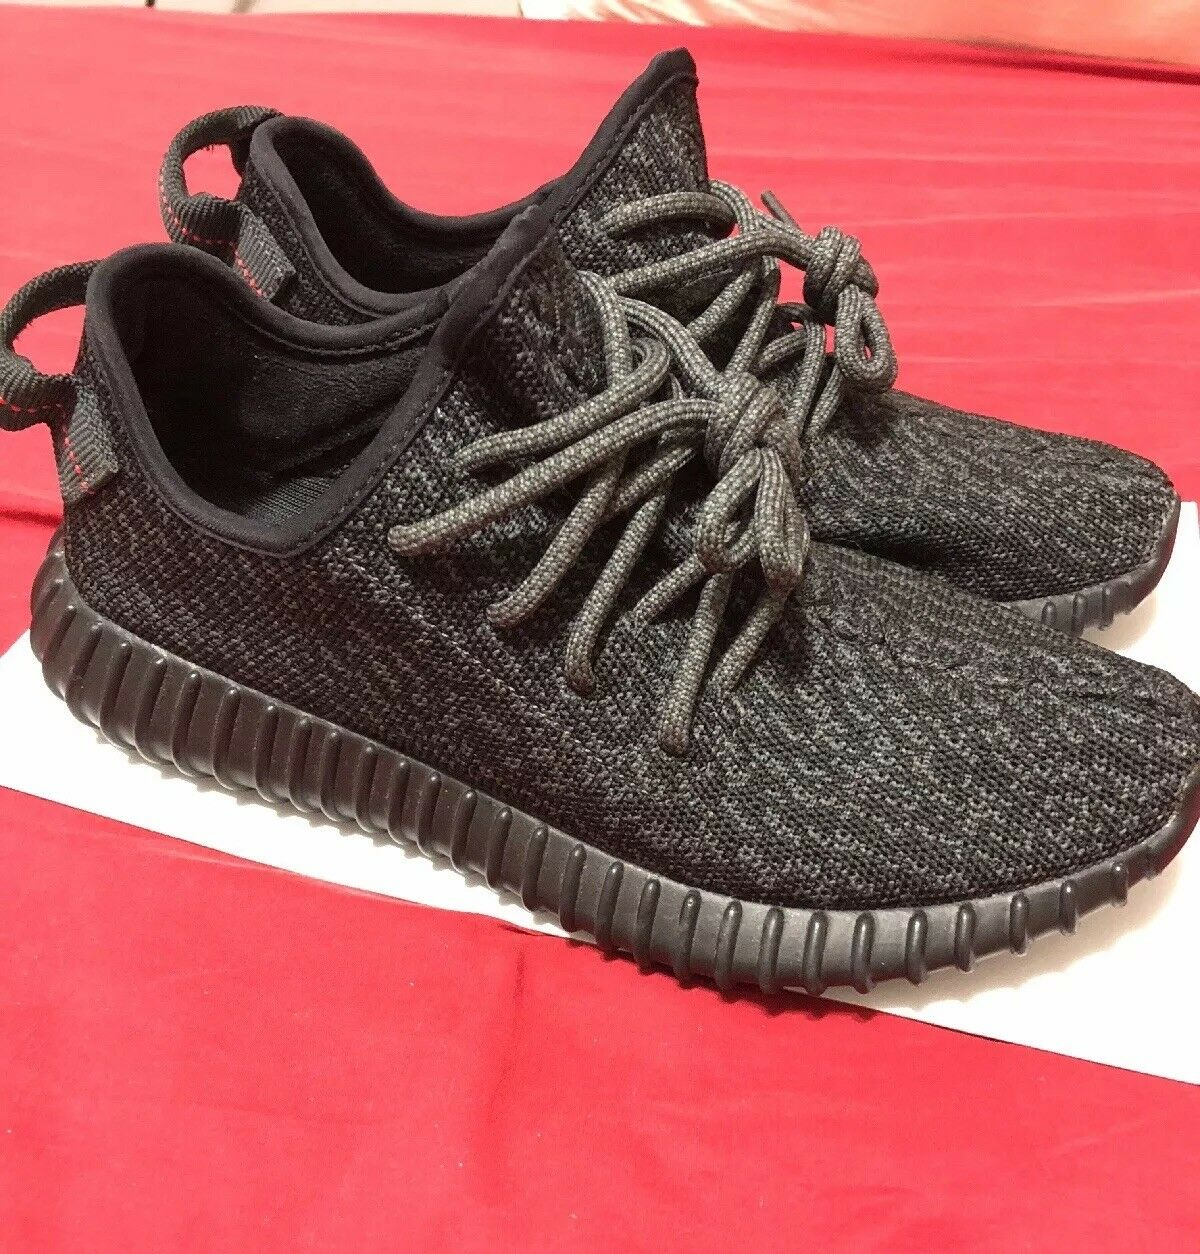 the best attitude e89b2 68acb ... good adidas yeezy yeezy yeezy impulso 350 pirata nero 65 3c7510 b2438  20ac5 ...